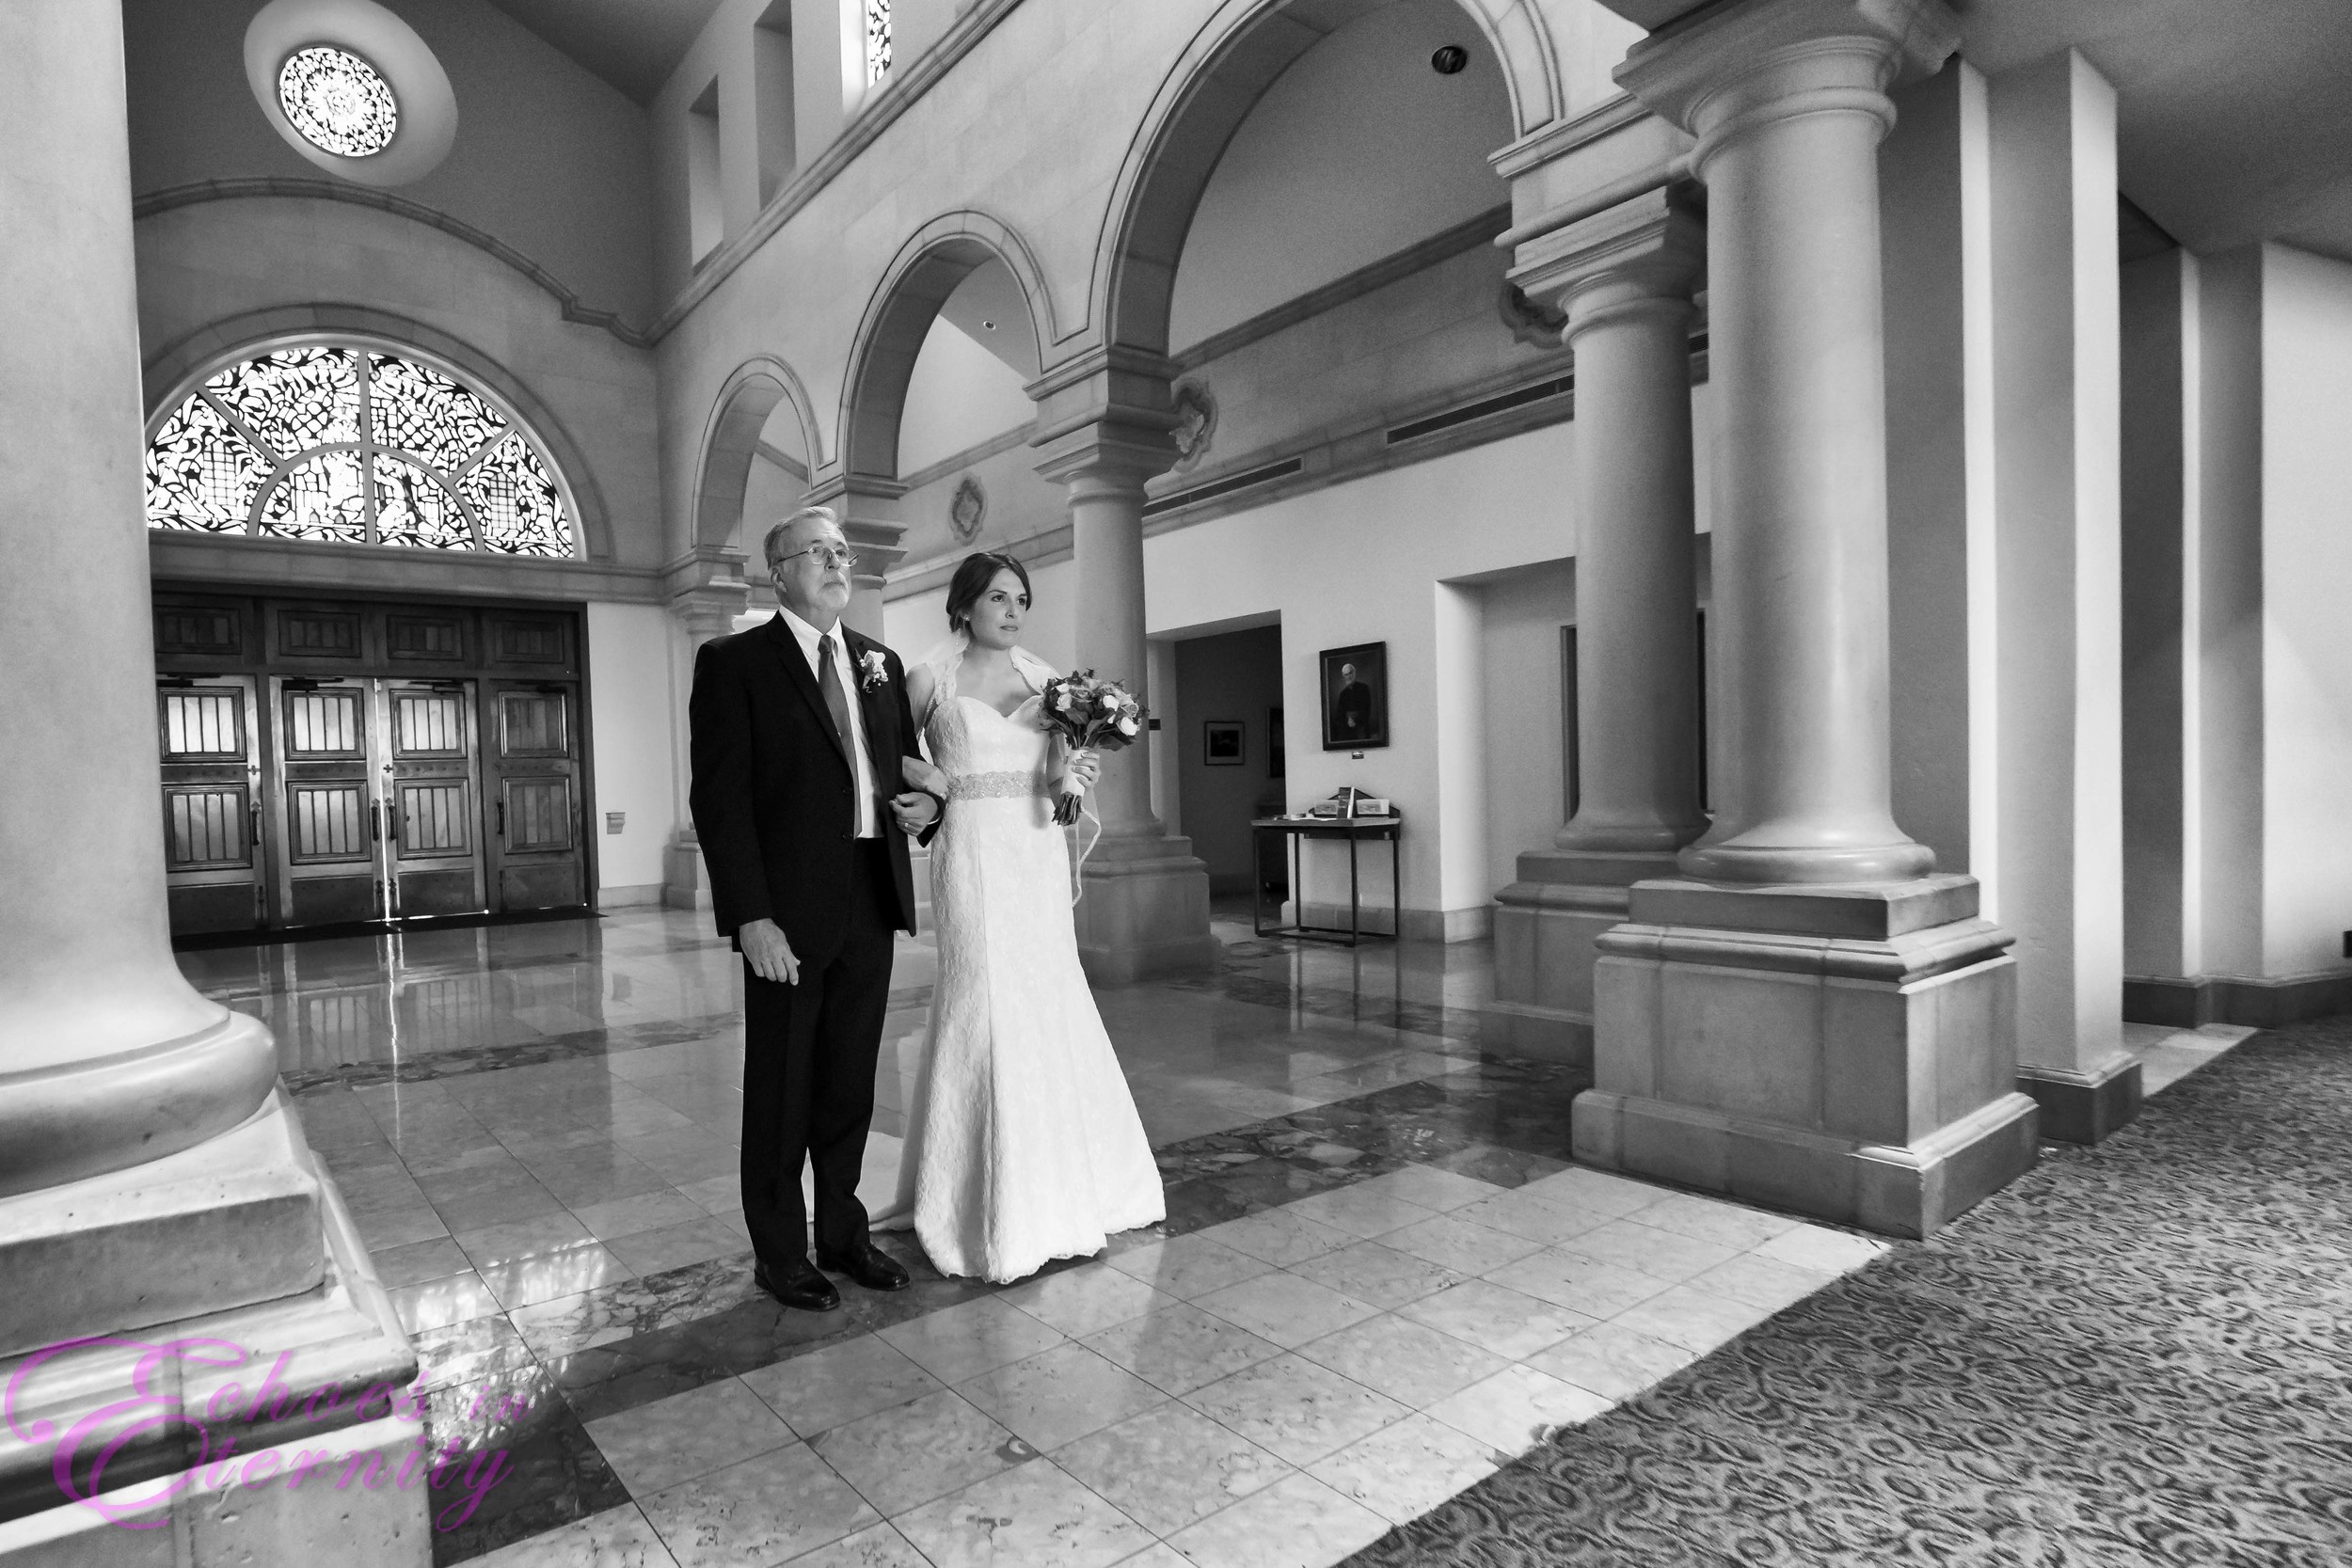 05 Bride and father walking down aisle Tucson Arizona Weddings.JPG